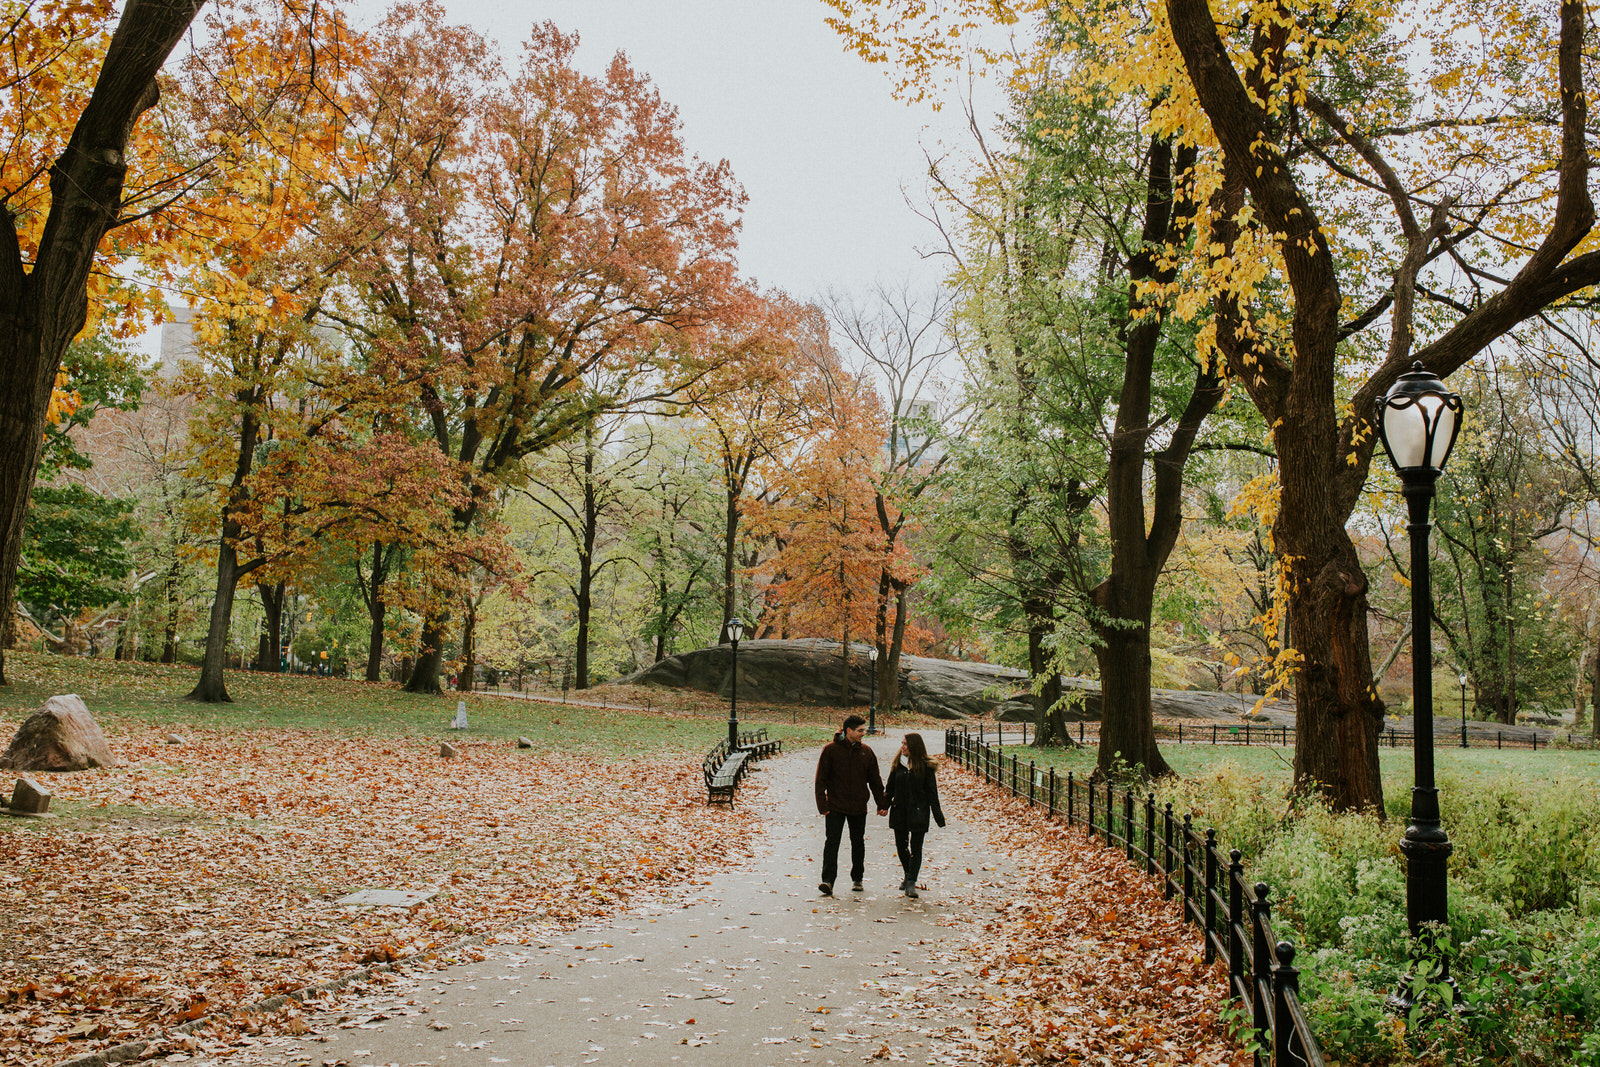 Fall Central Park Engagement Session, Fall in Central Park, Fall Engagement Sessions in Central Park